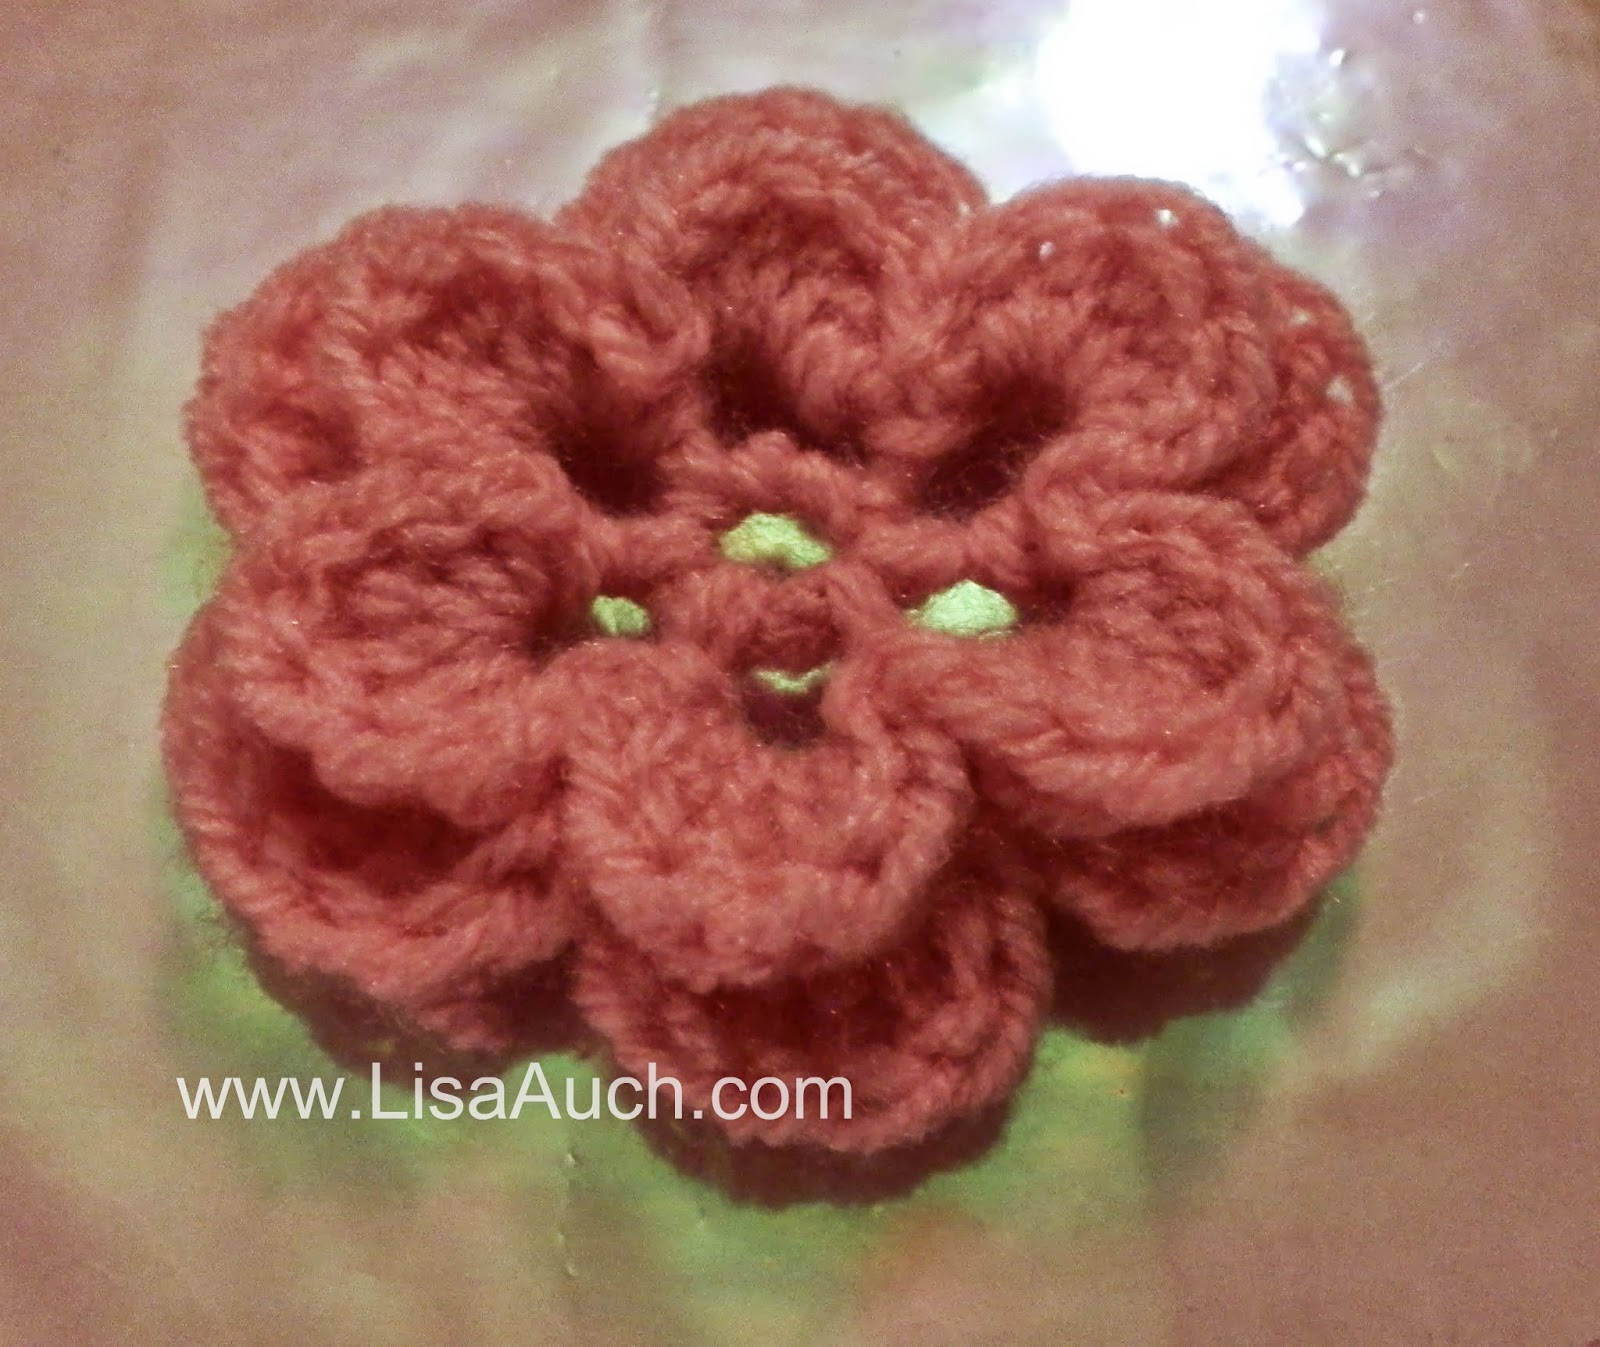 Crochet Flower Pattern (Easy 3D Crochet Flower ) | Free Crochet ...